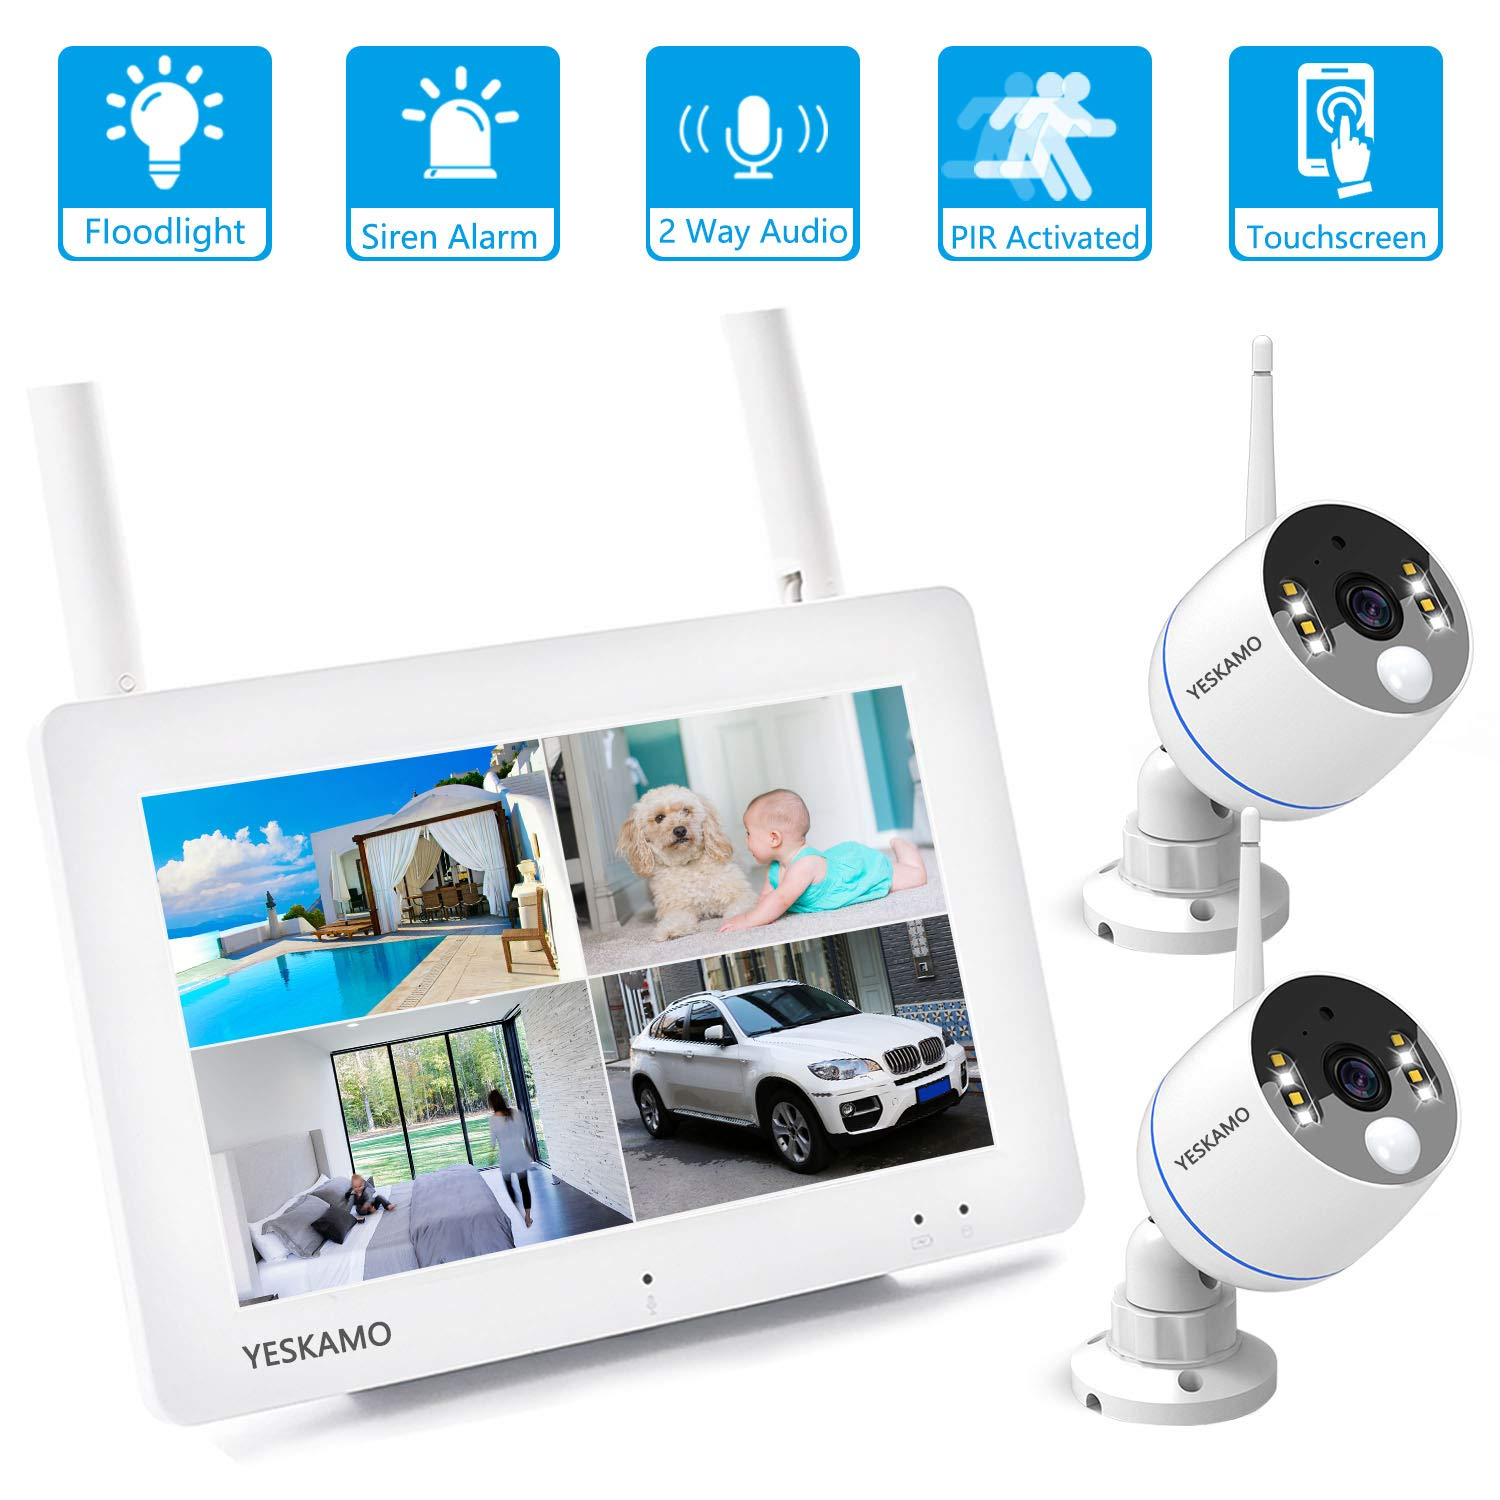 Floodlight Camera Security System Wireless Outdoor with 7 Portable Touchscreen Monitor 2Pcs 1080P Floodlight WiFi IP Camera for House Security, YESKAMO Home Video Surveillance, Two Way Audio